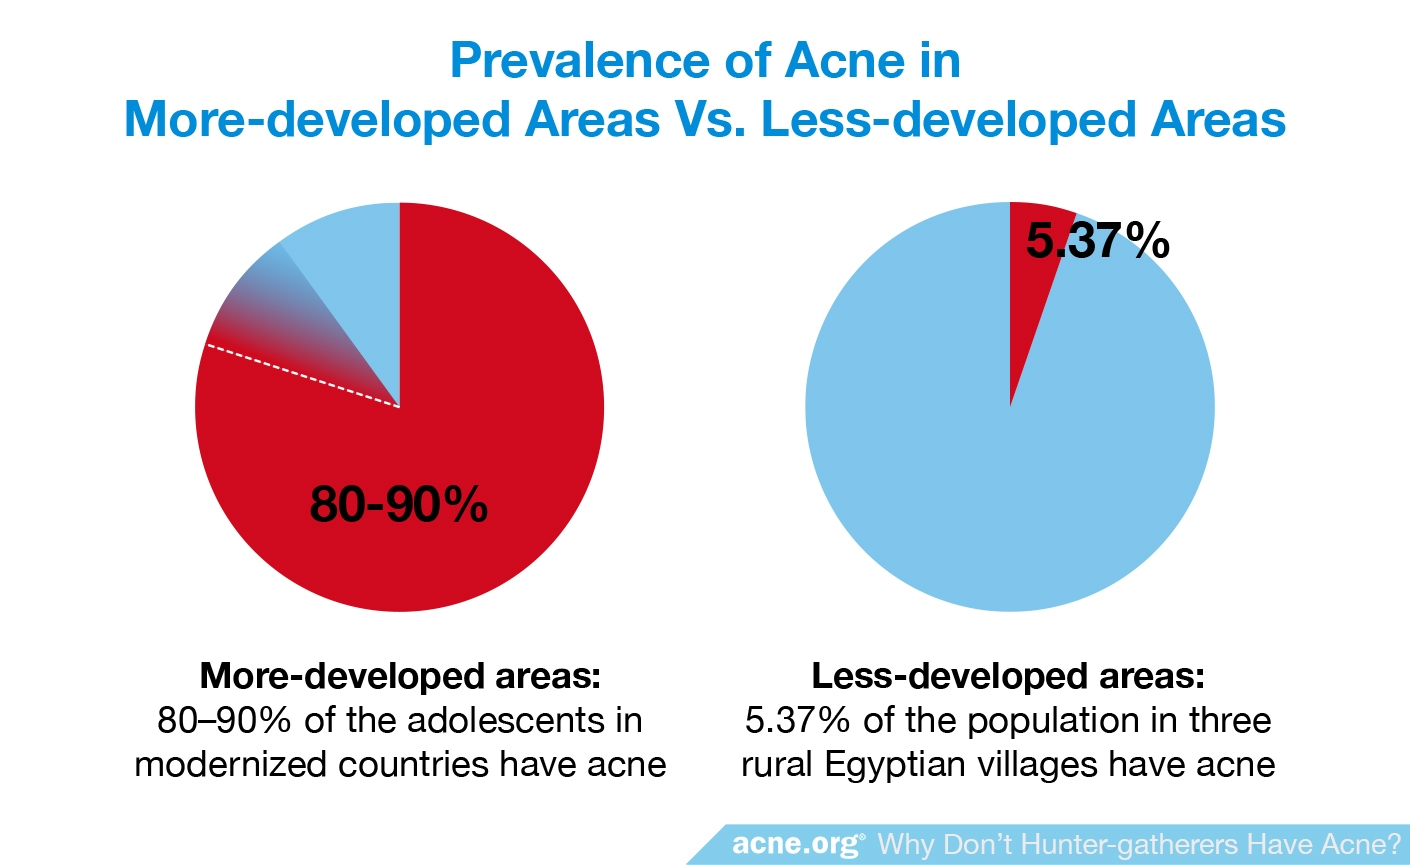 Prevalence of Acne in More-developed Areas vs. Less-developed Areas